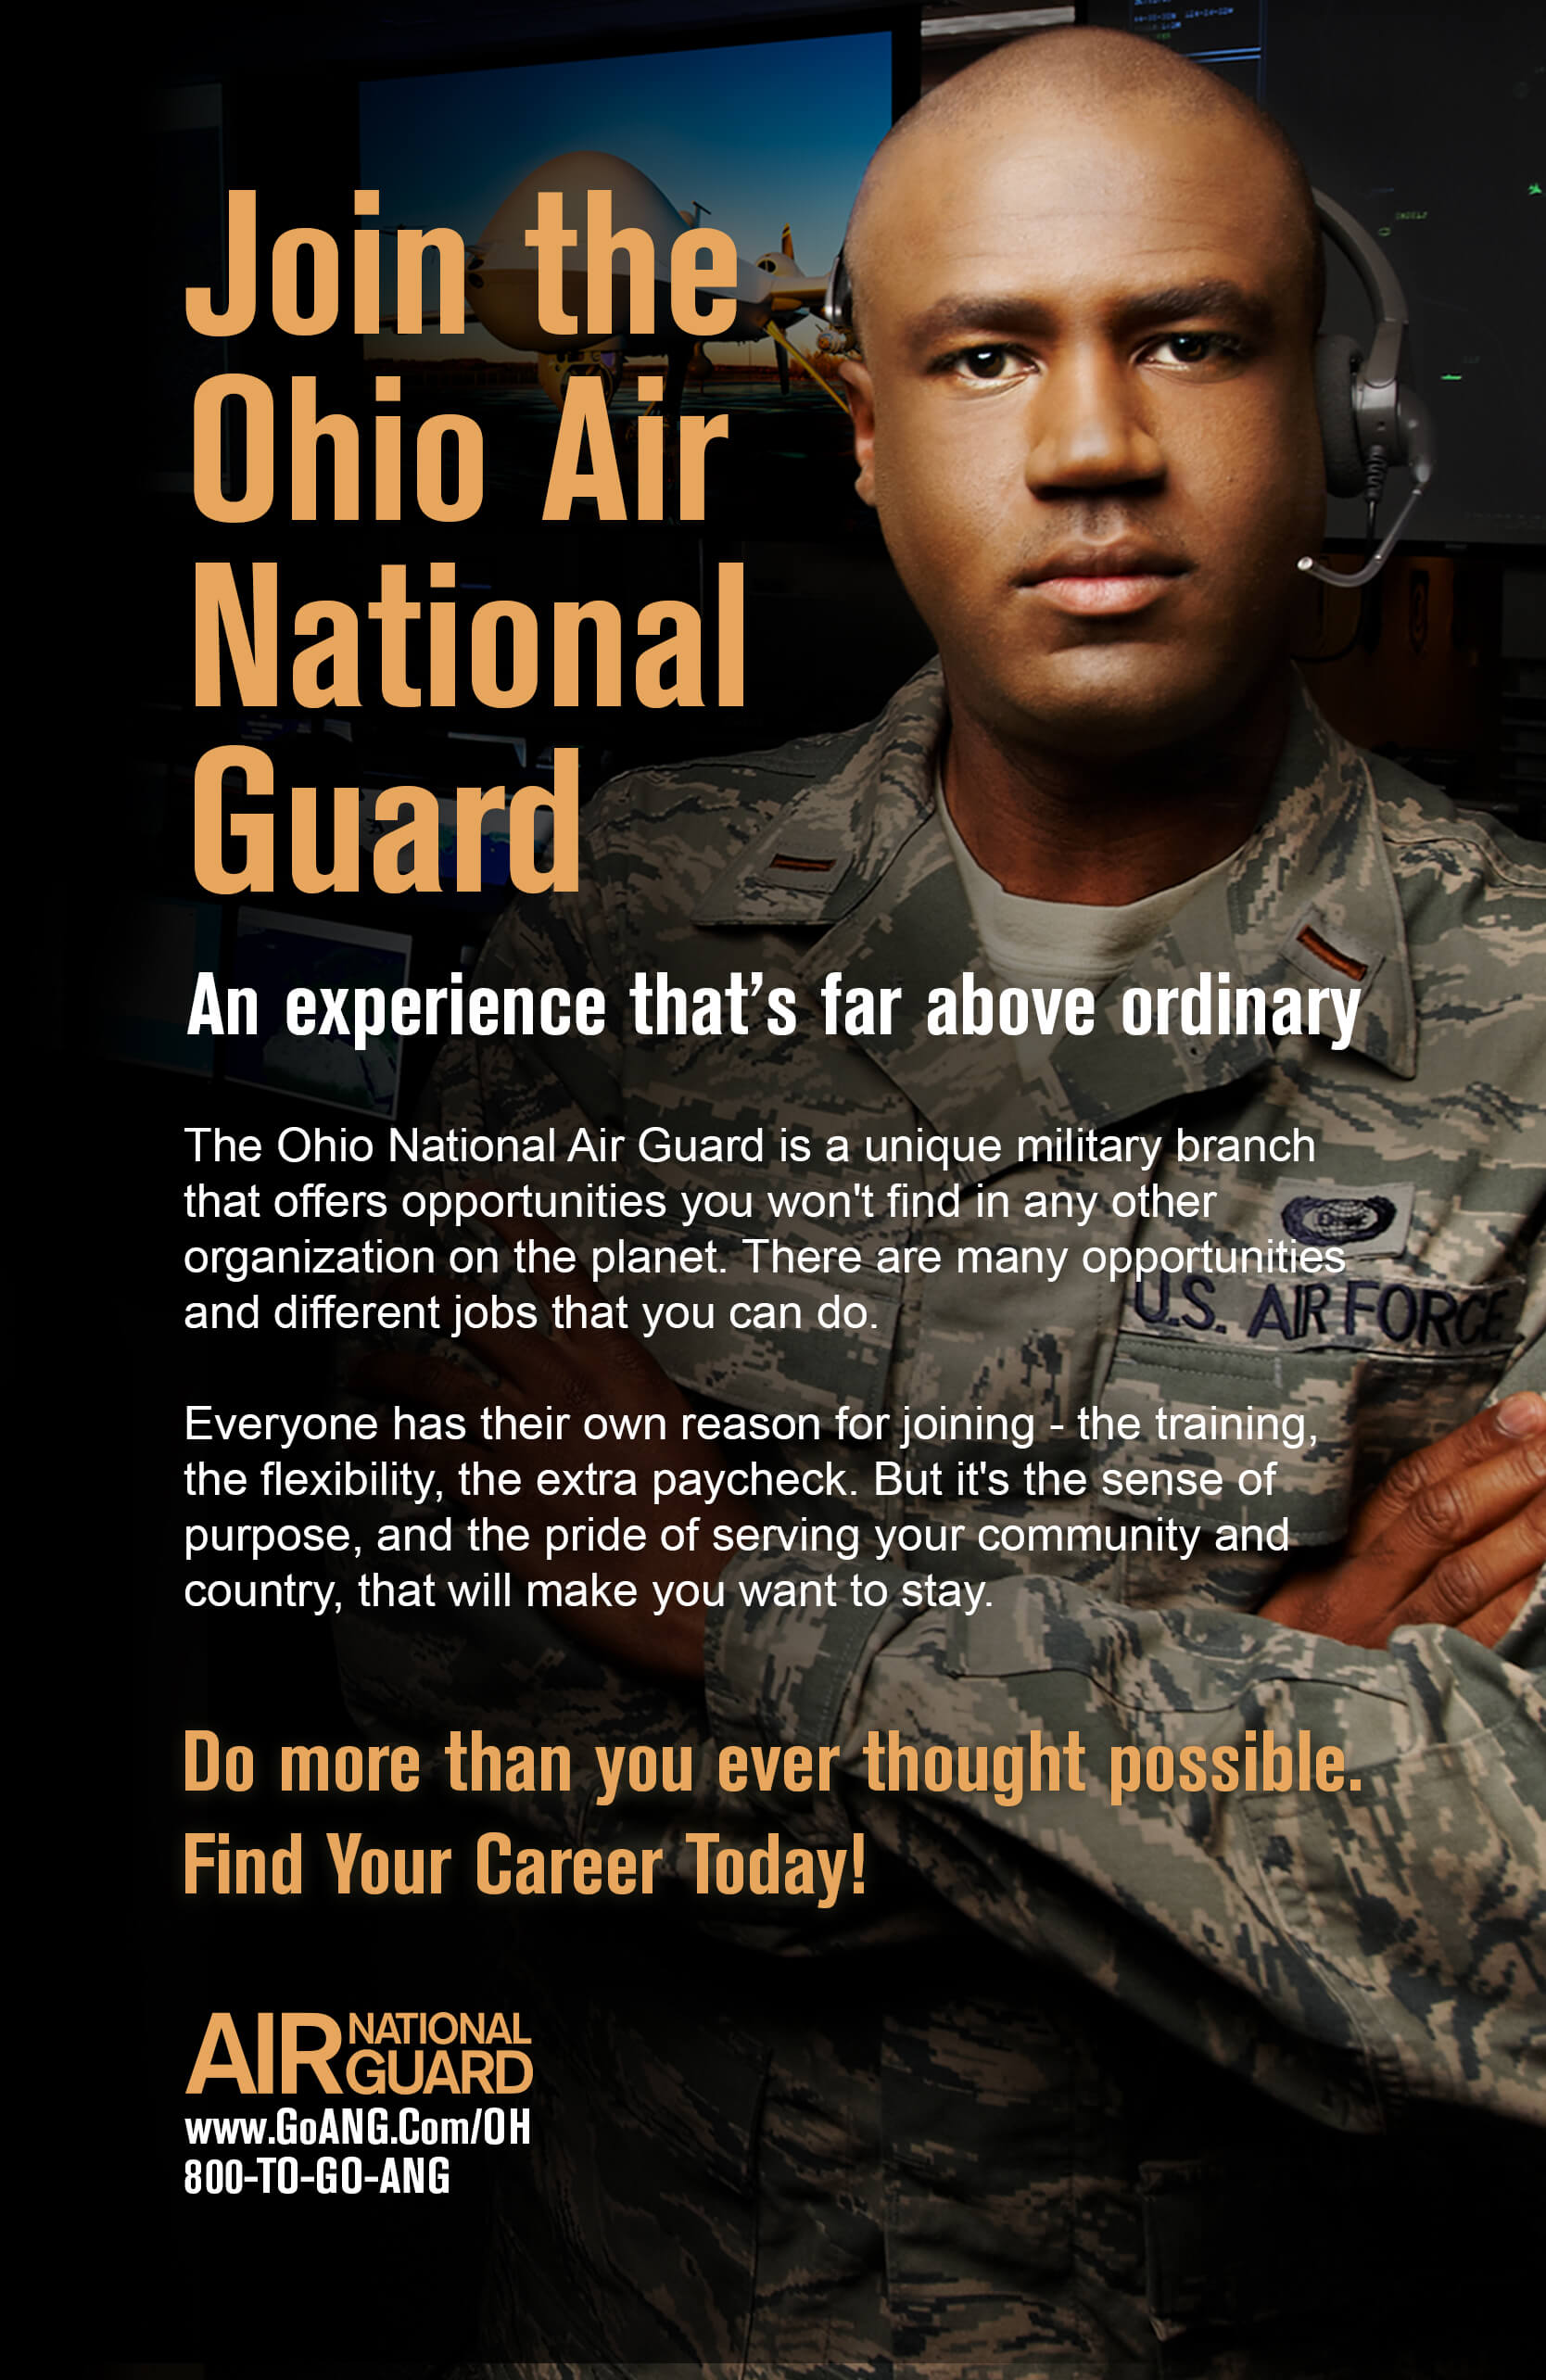 Ohio Air National Guard Flyer